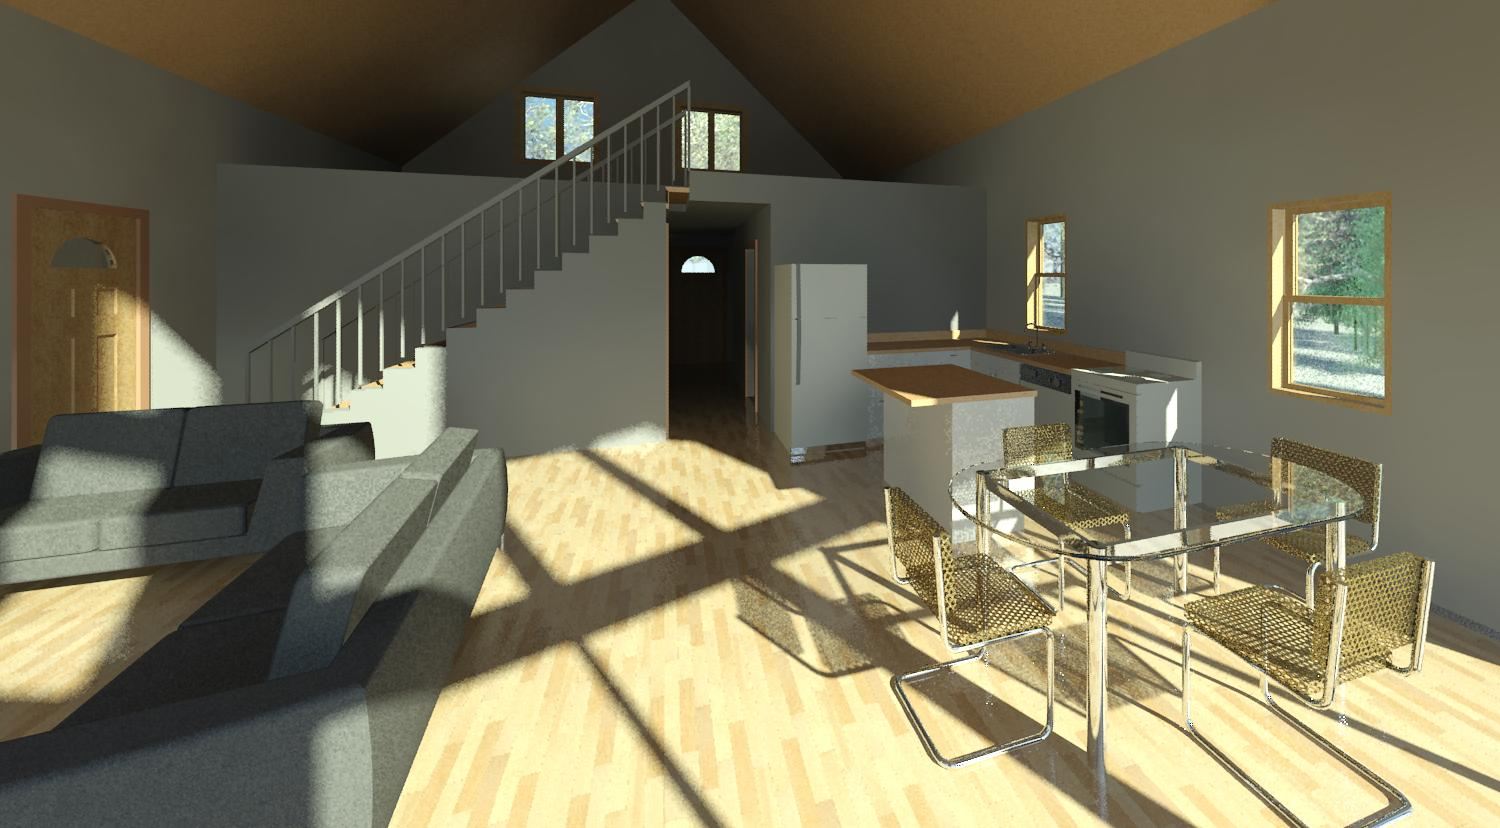 Eco House - Interior